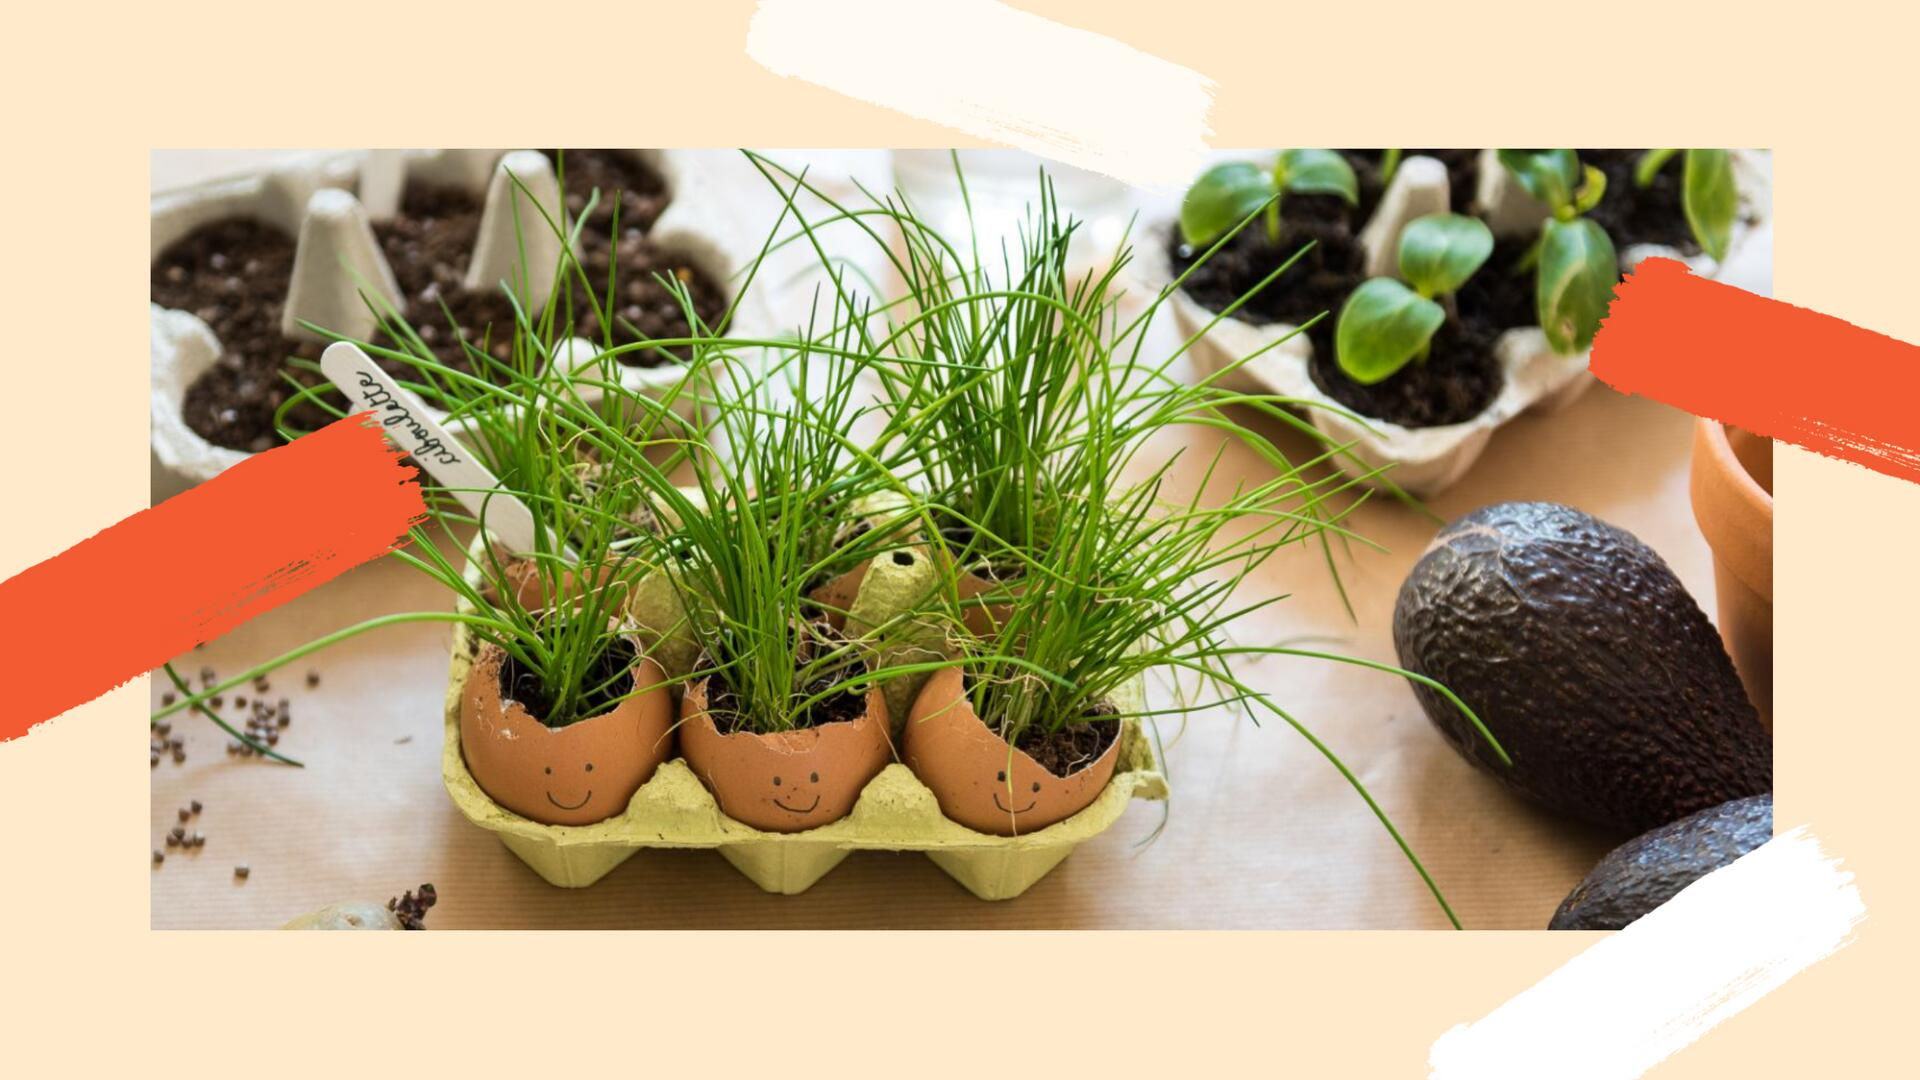 kl_mag_change_lets-do-it_gardening-at-home-with-kids_image-at-bottom